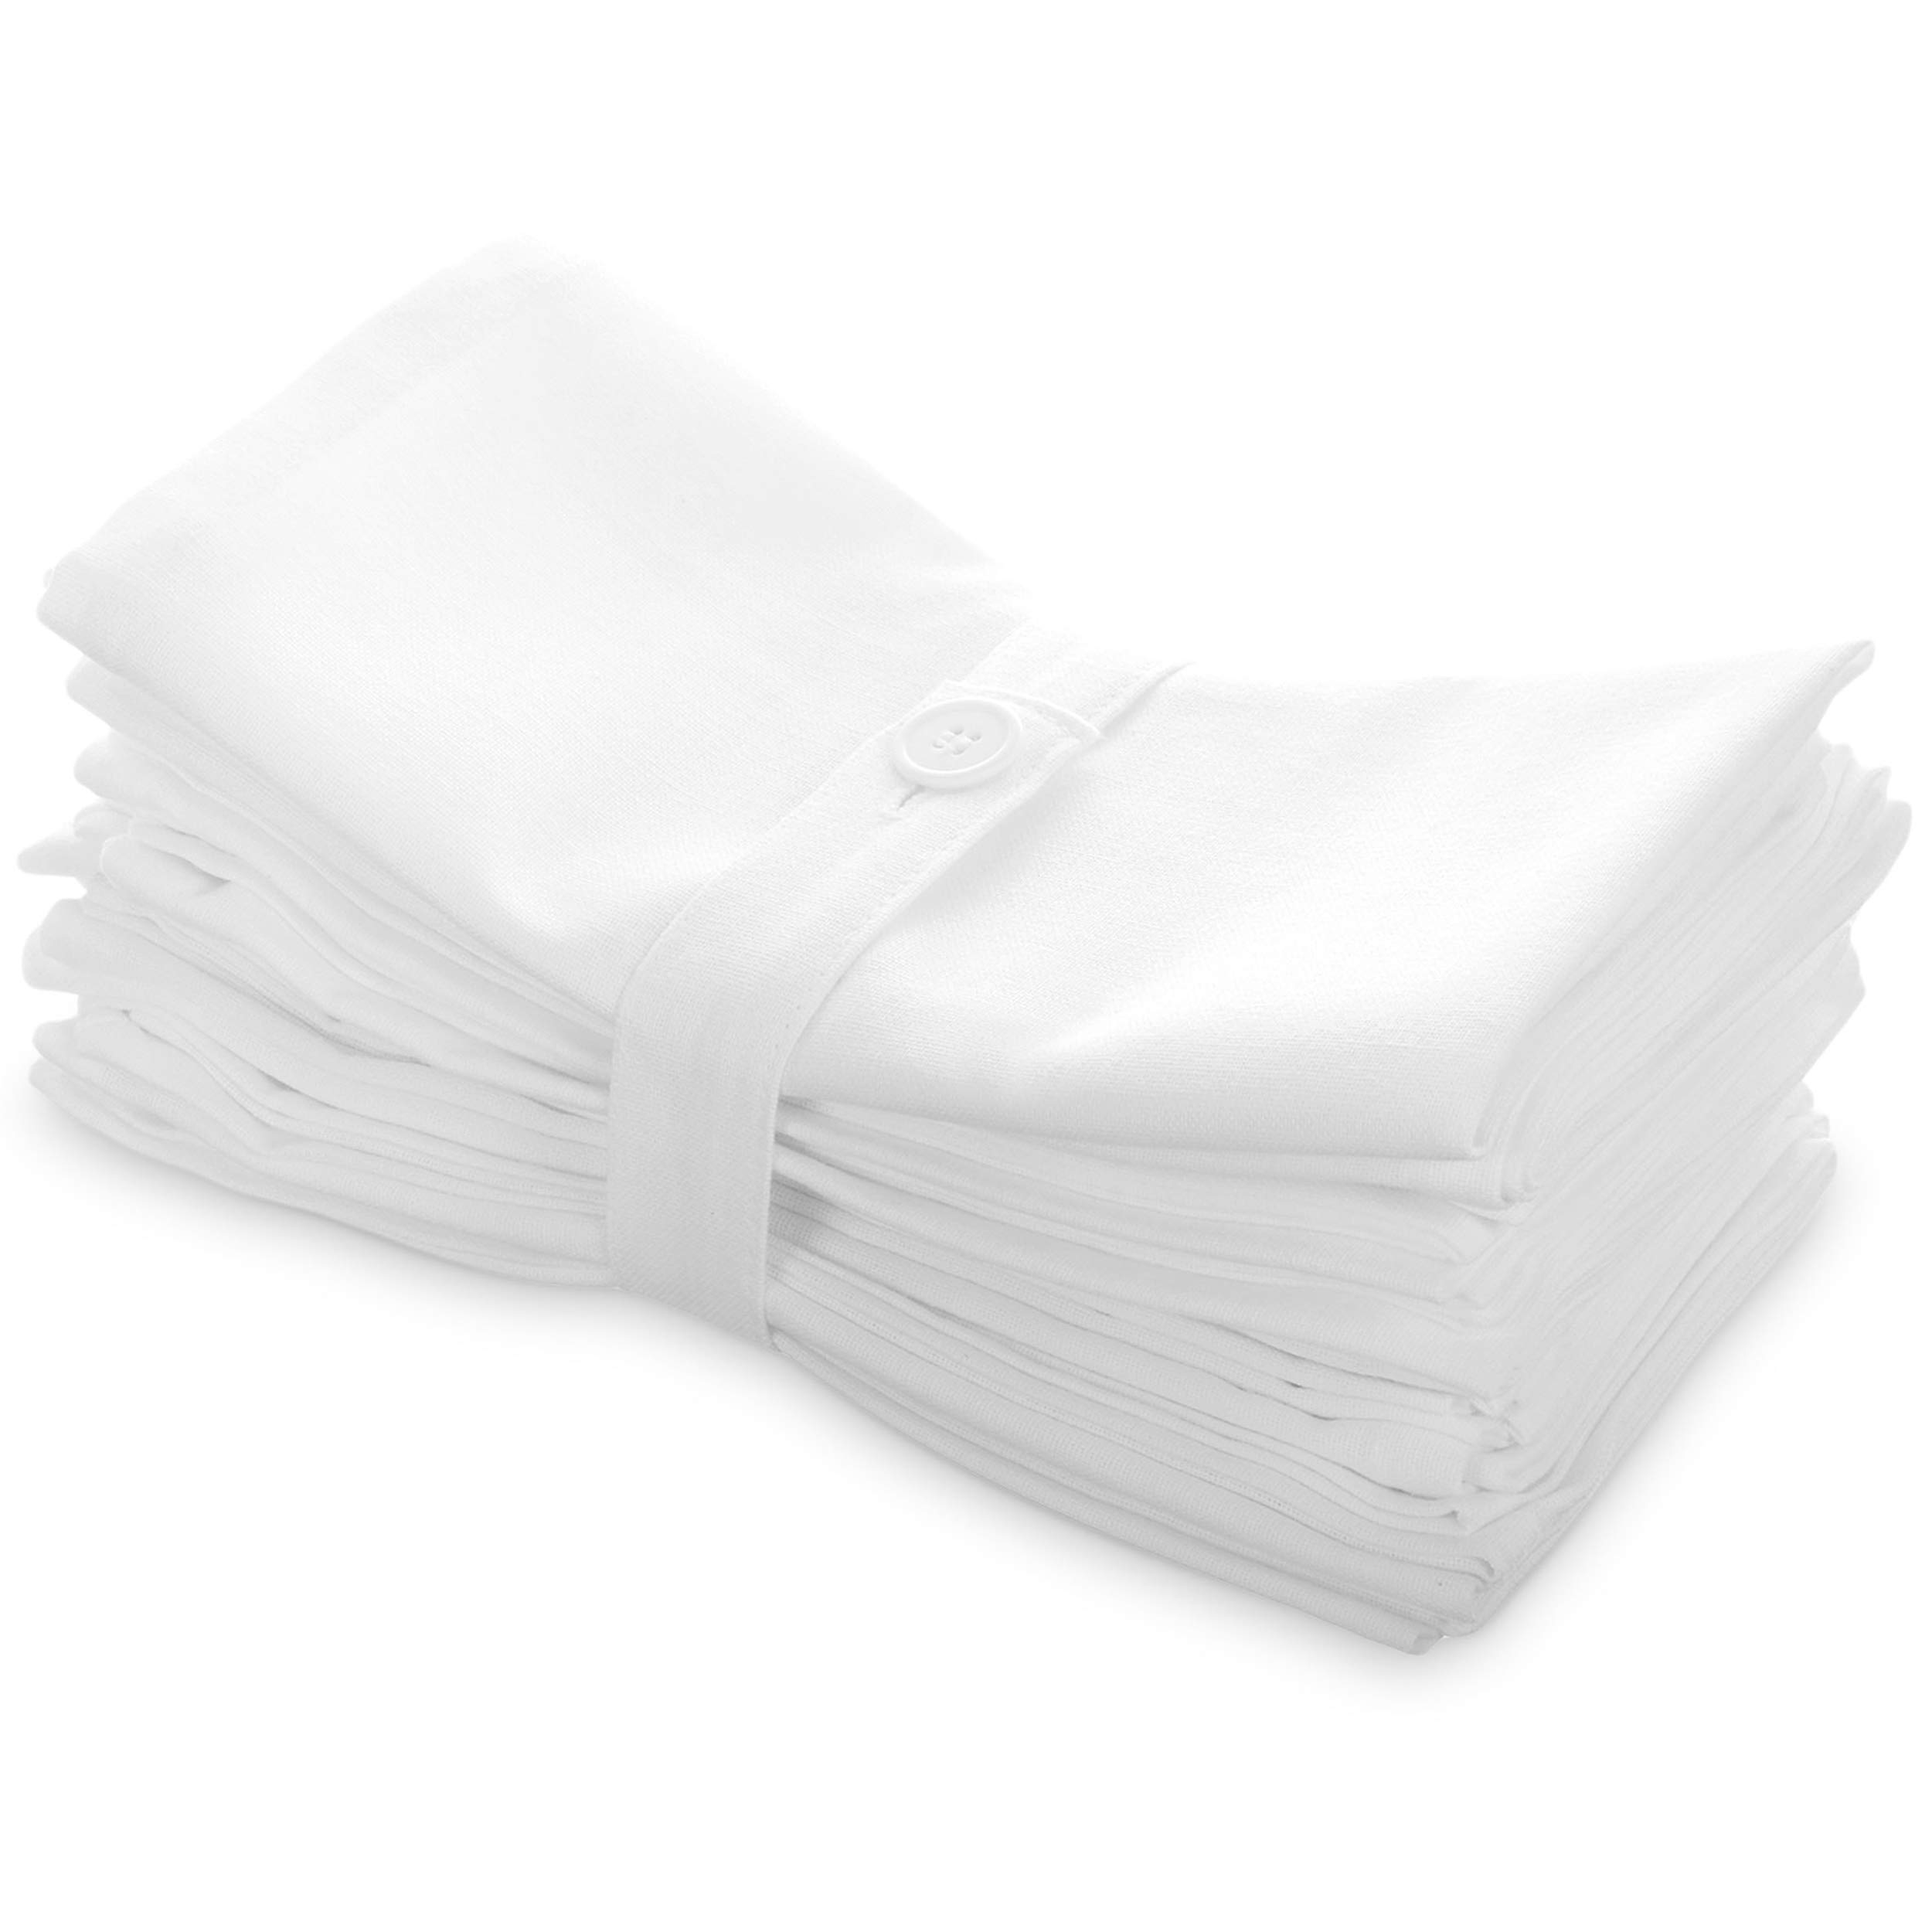 Aunti Em's Kitchen White Cotton Napkins Cloth 20 x 20 Oversized 100% Natural Bulk Linens for Dinner, Events, Weddings, Set of 12